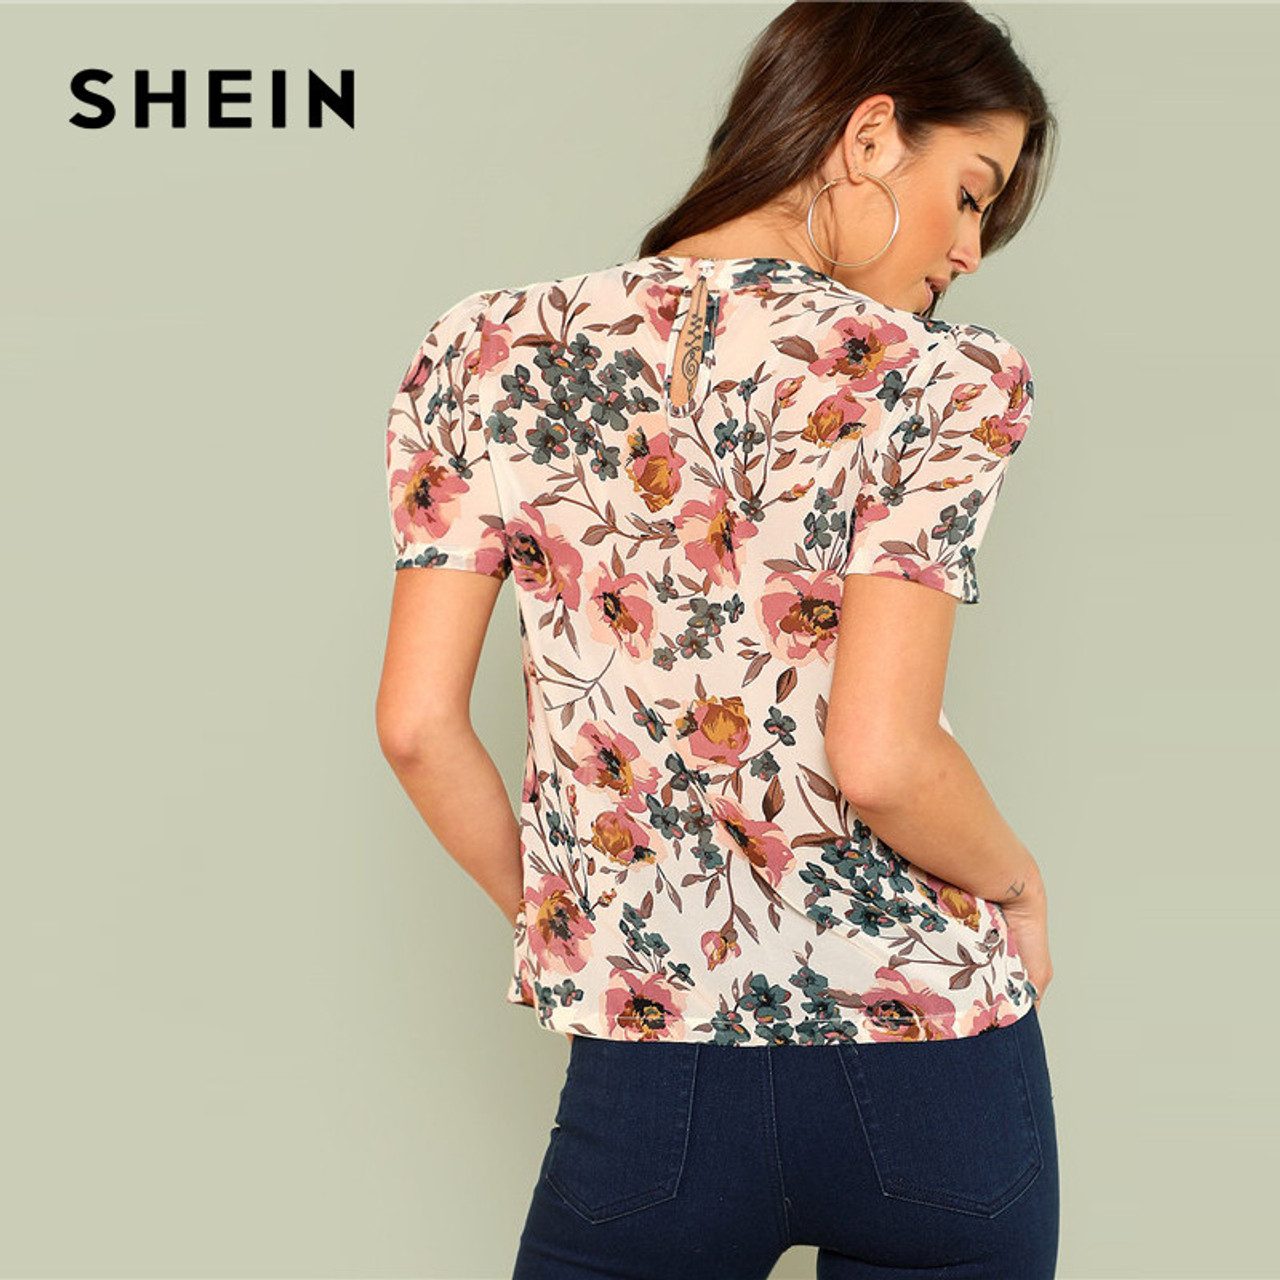 299521574b ... SHEIN Prairie Chic Boho Multicolor Floral Print Gathered Neck Puff  Sleeve Womens Tops and Blouses for ...